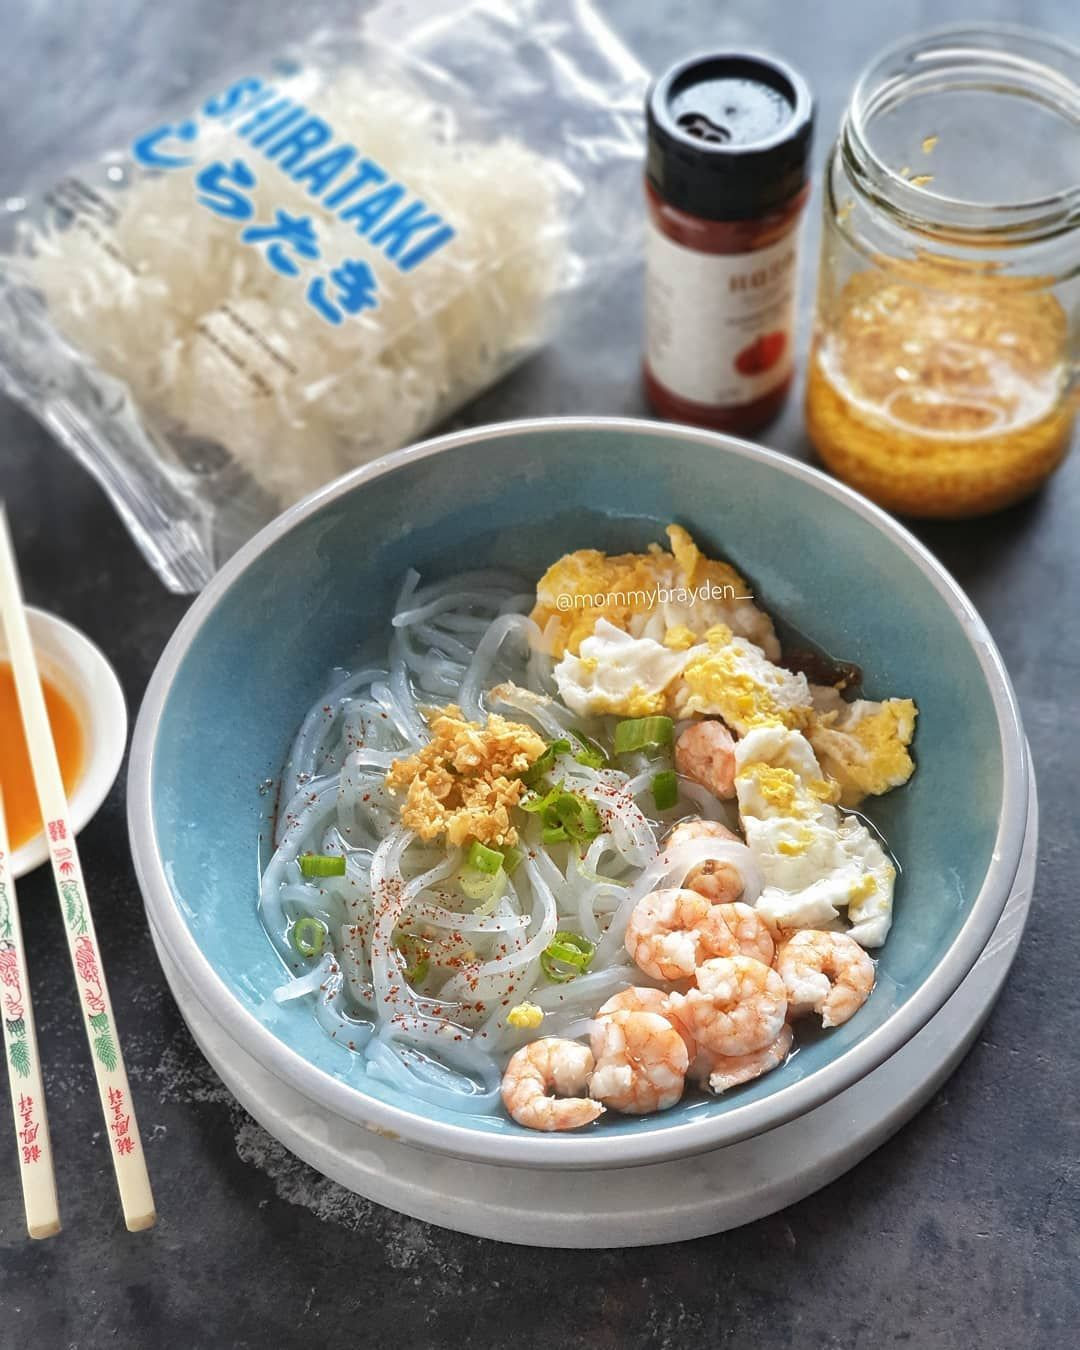 New The 10 Best Recipes With Pictures Shirataki Noodle Soup Resepmommybee Pertamax Nih Cobain Mie Shirataki Yg Ktnya Zero Calories Makanan Resep Mie